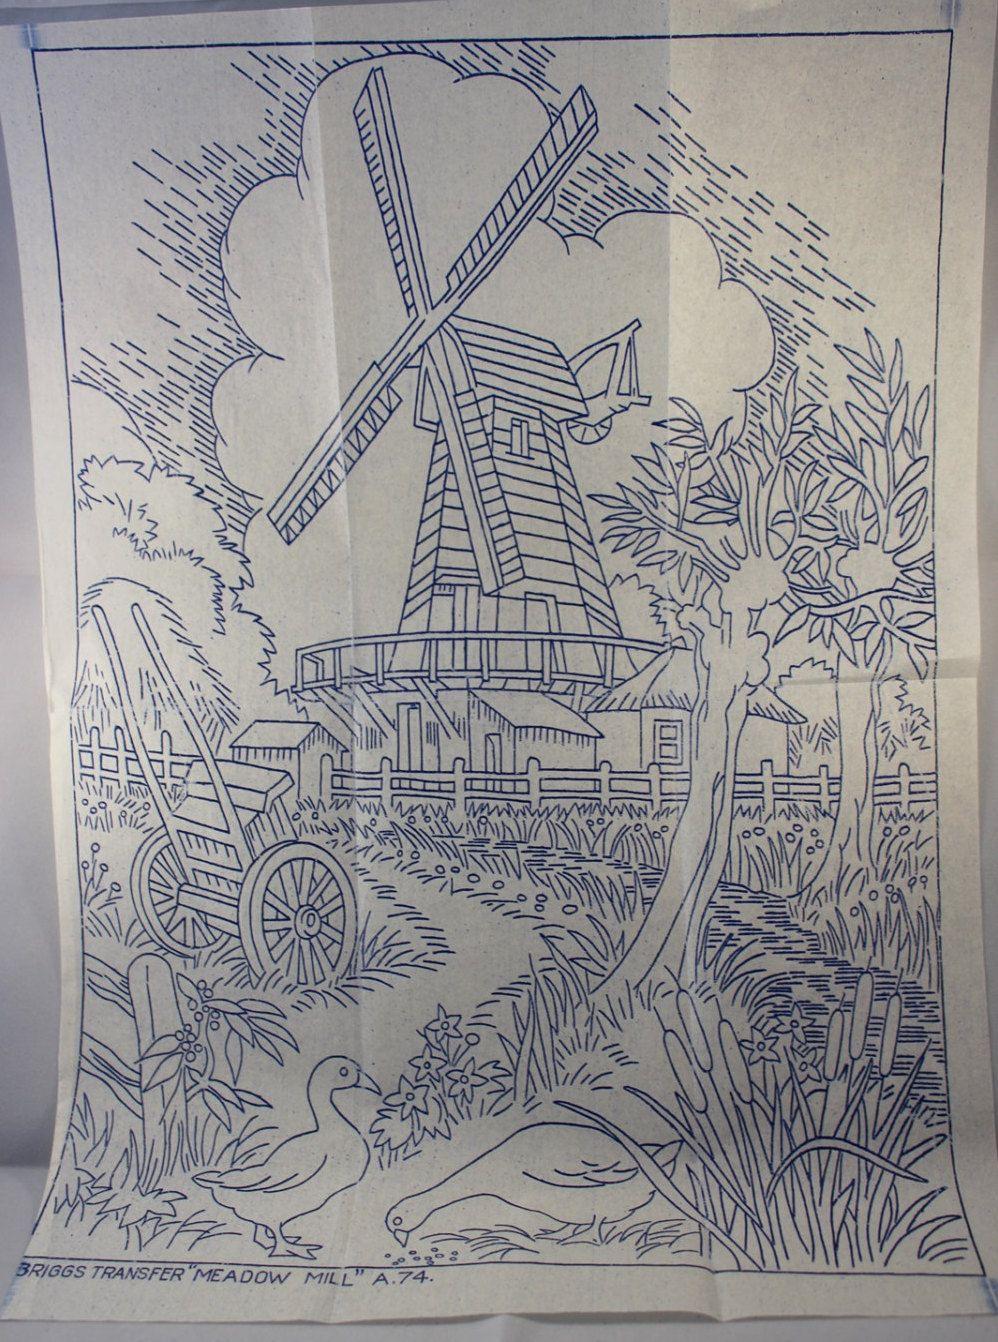 Meadow mill vintage ironon embroidery transfer briggs a by